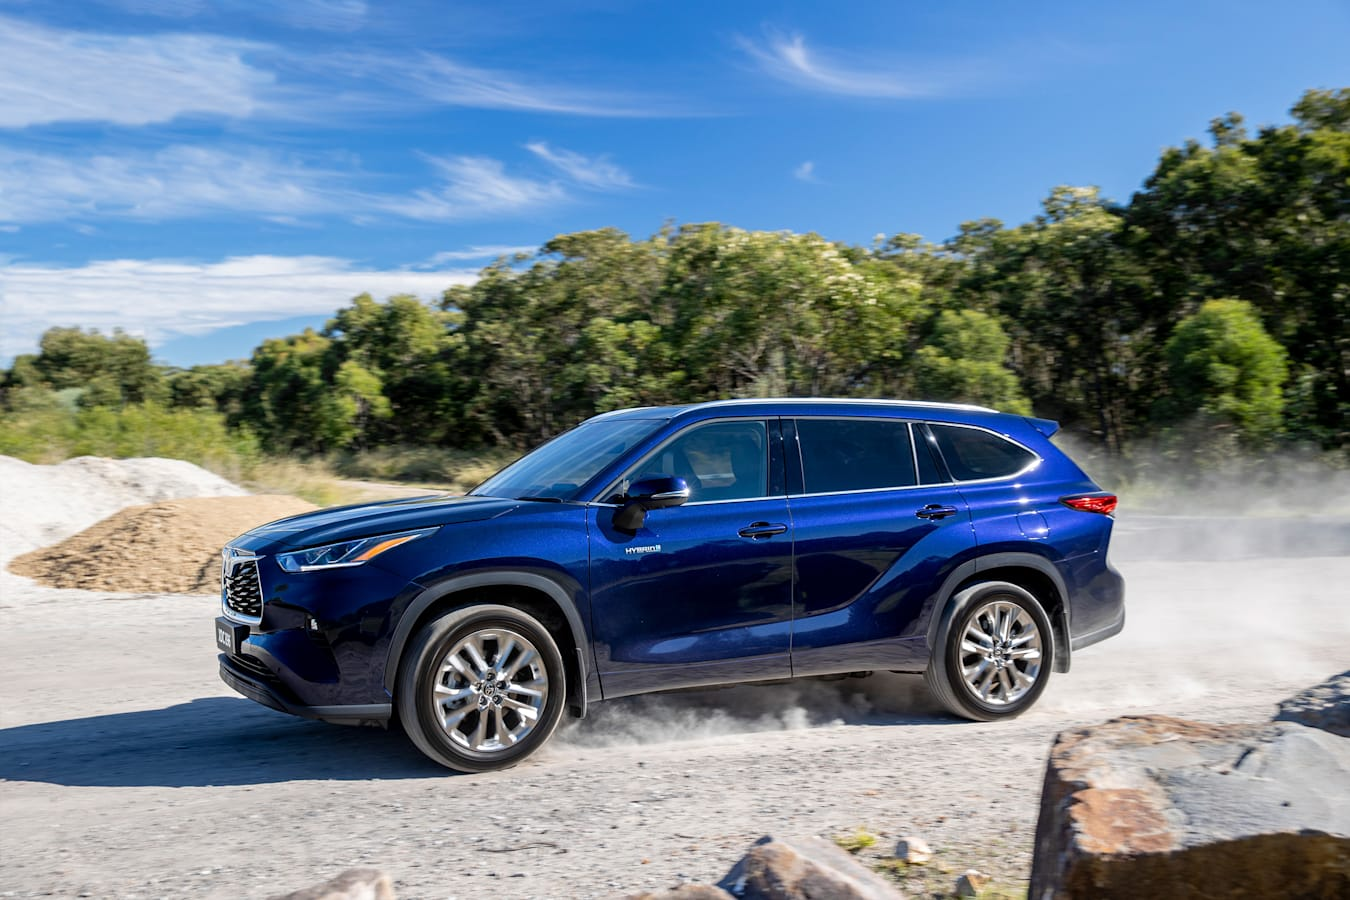 Wheels Reviews 2021 Toyota Kluger Hybrid Australian Off Road Drive Review